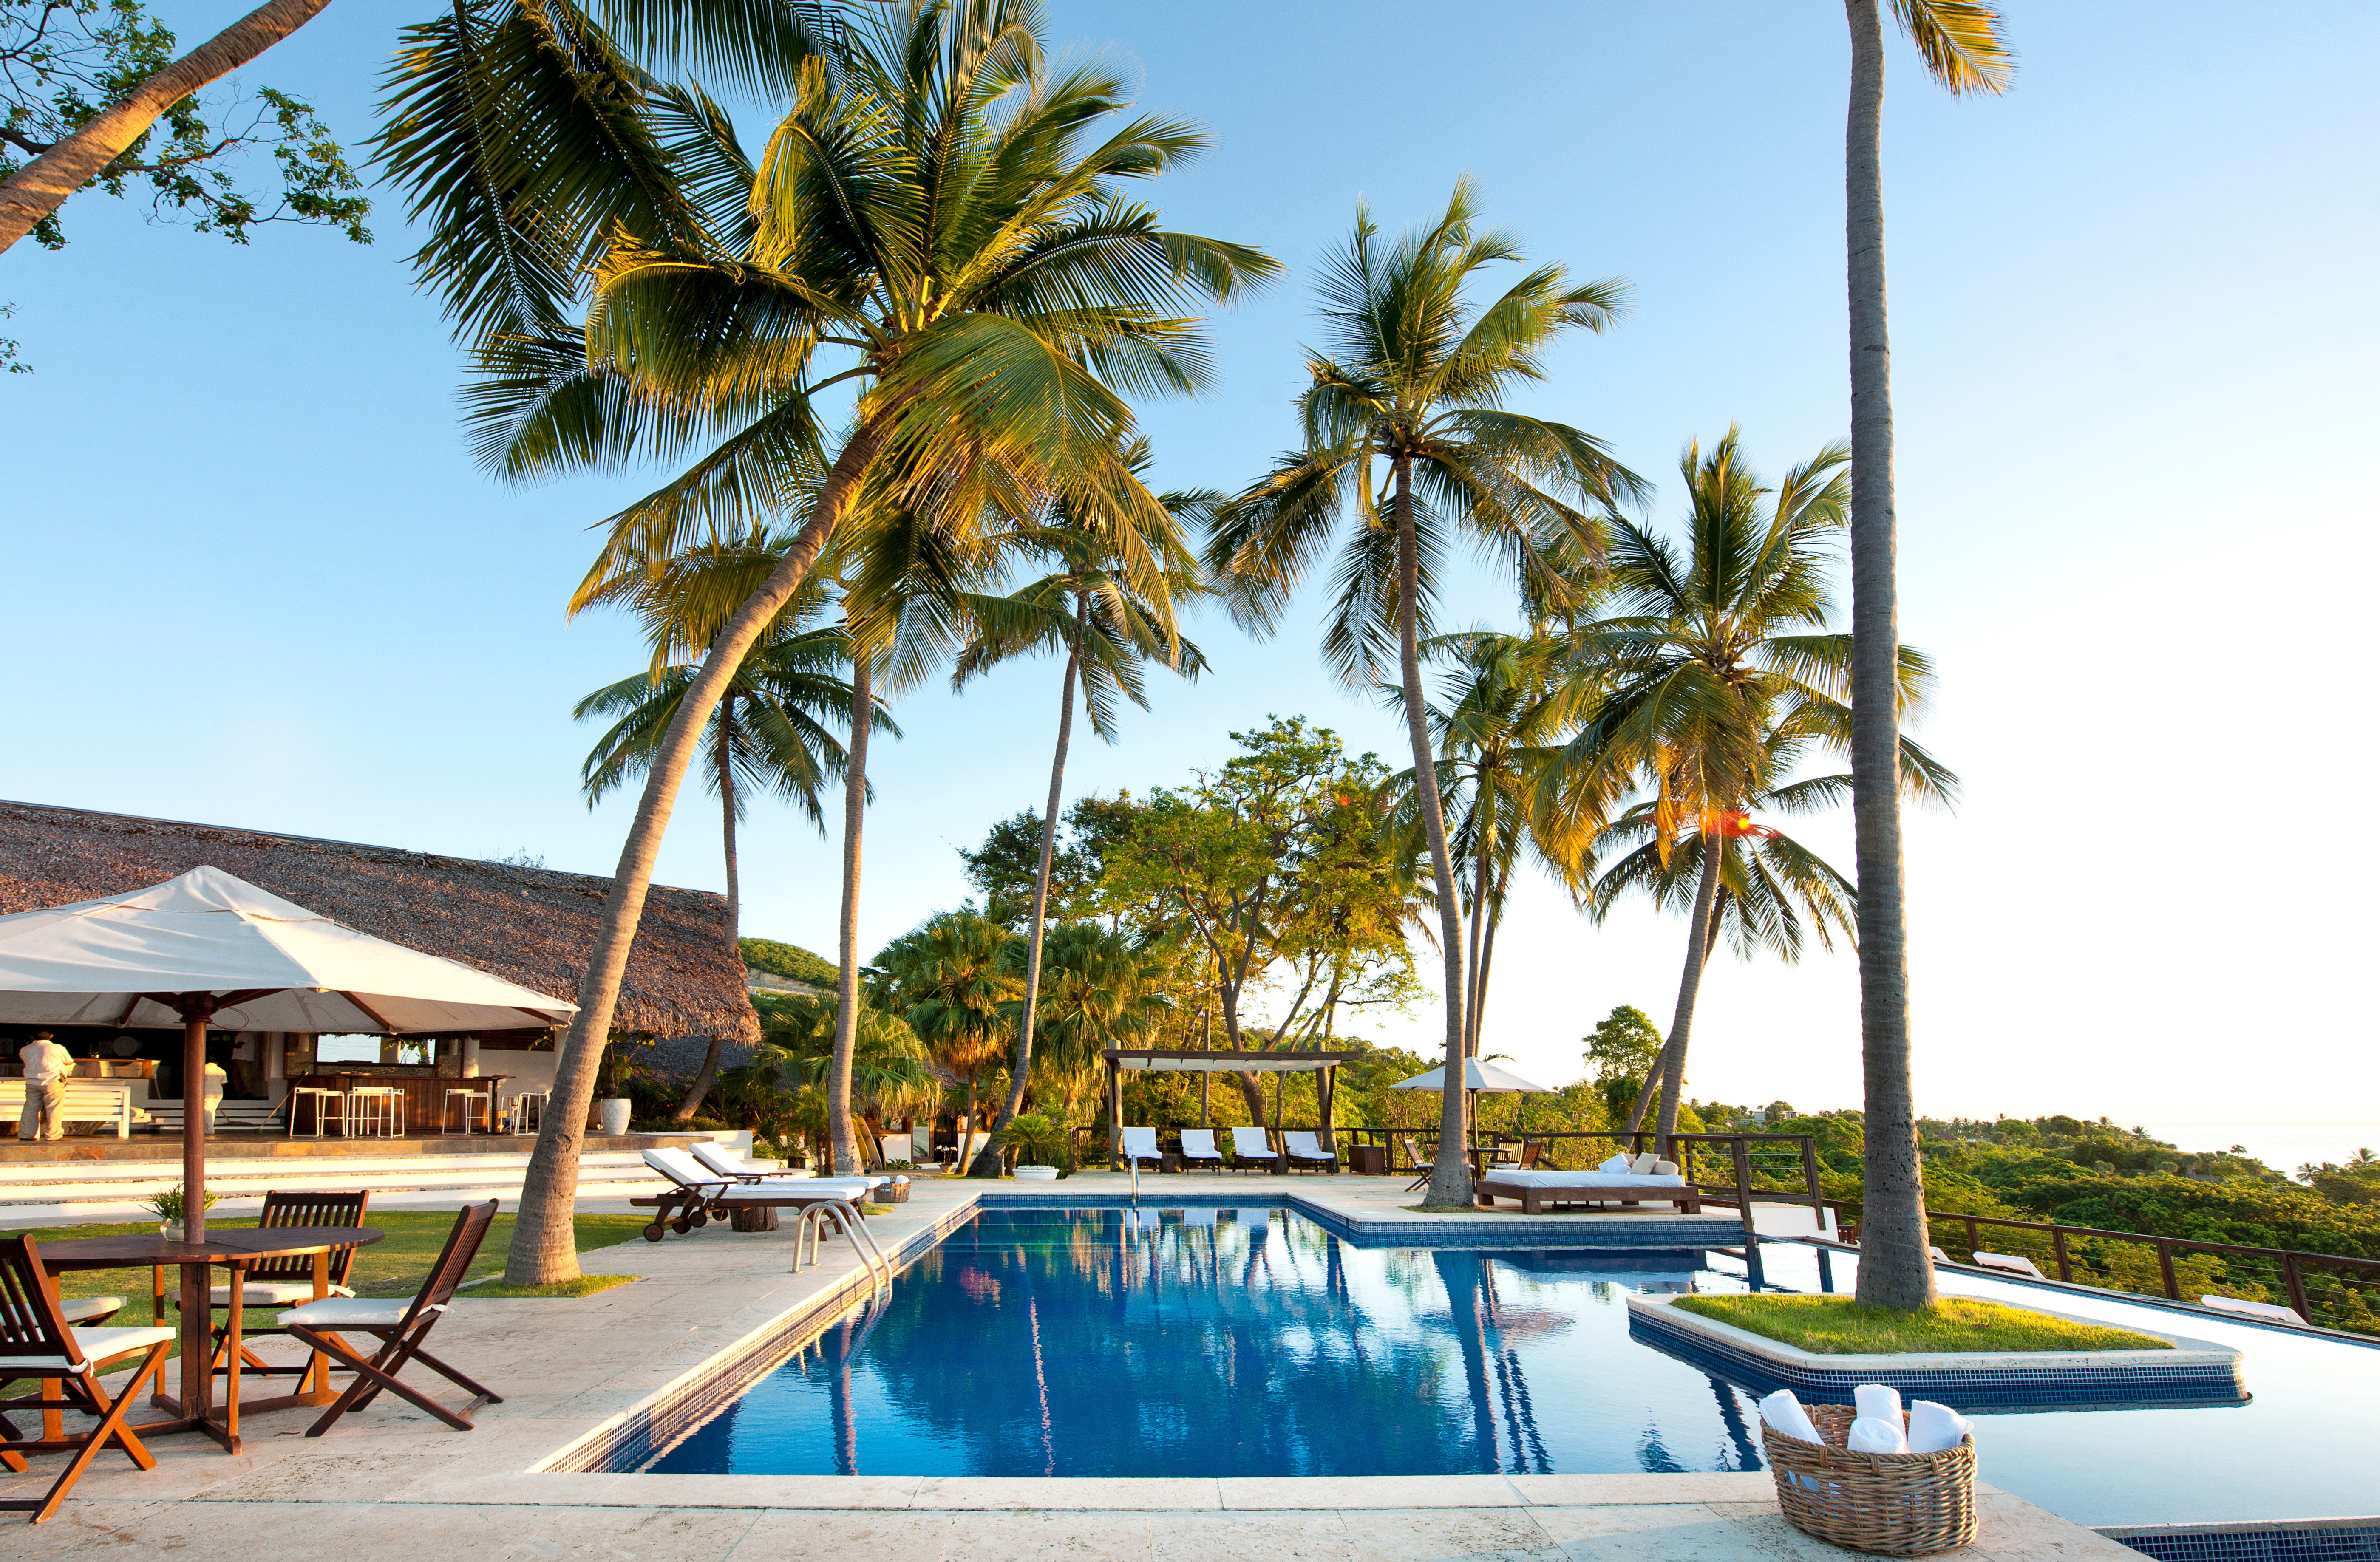 Eco Hotels Lodge Play Pool Scenic views tree sky outdoor palm Beach Resort property leisure swimming pool vacation caribbean arecales estate lined Villa real estate condominium palm family bay plant shade sandy shore